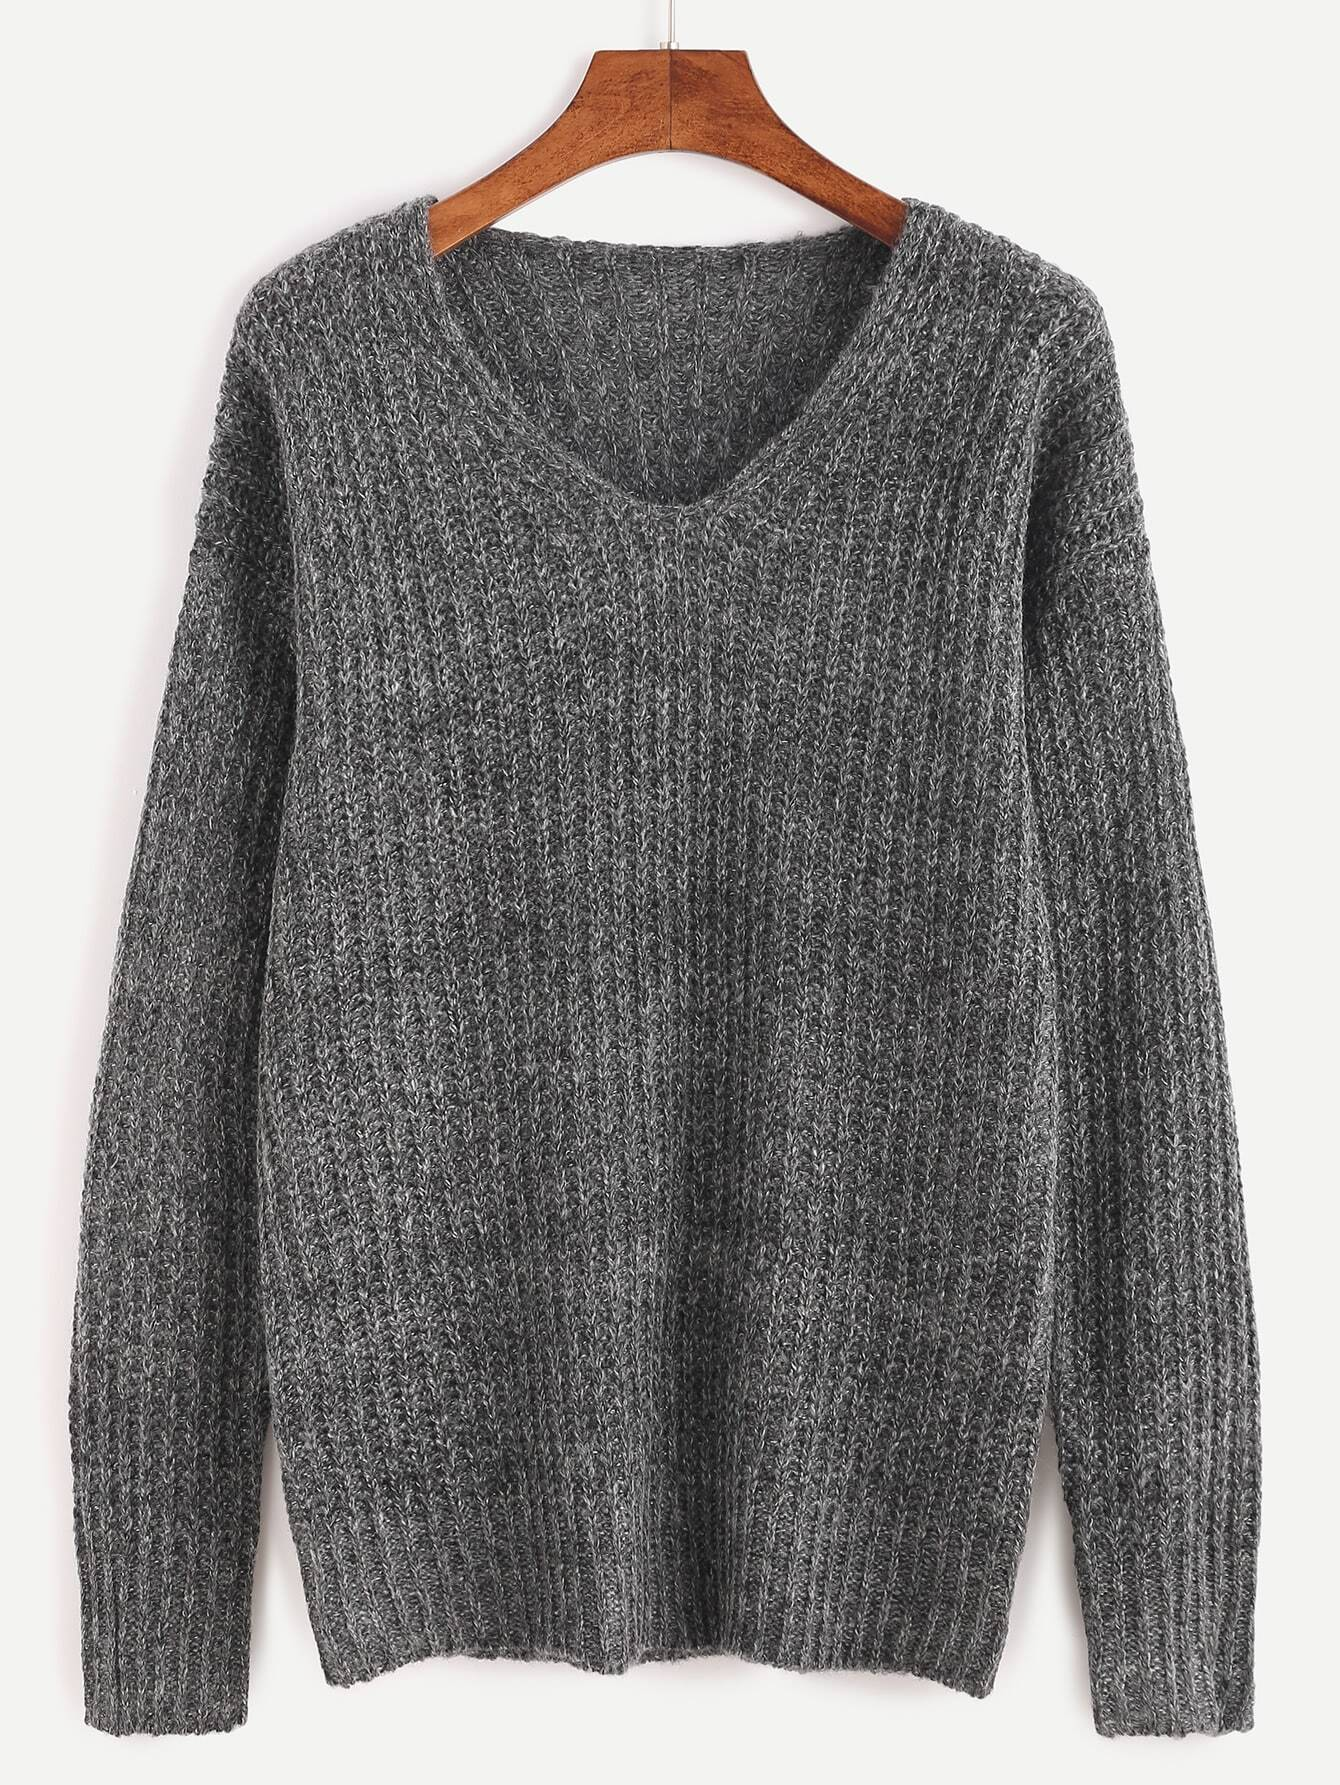 Grey Ribbed Knit Drop Shoulder Sweater sweater160920456A